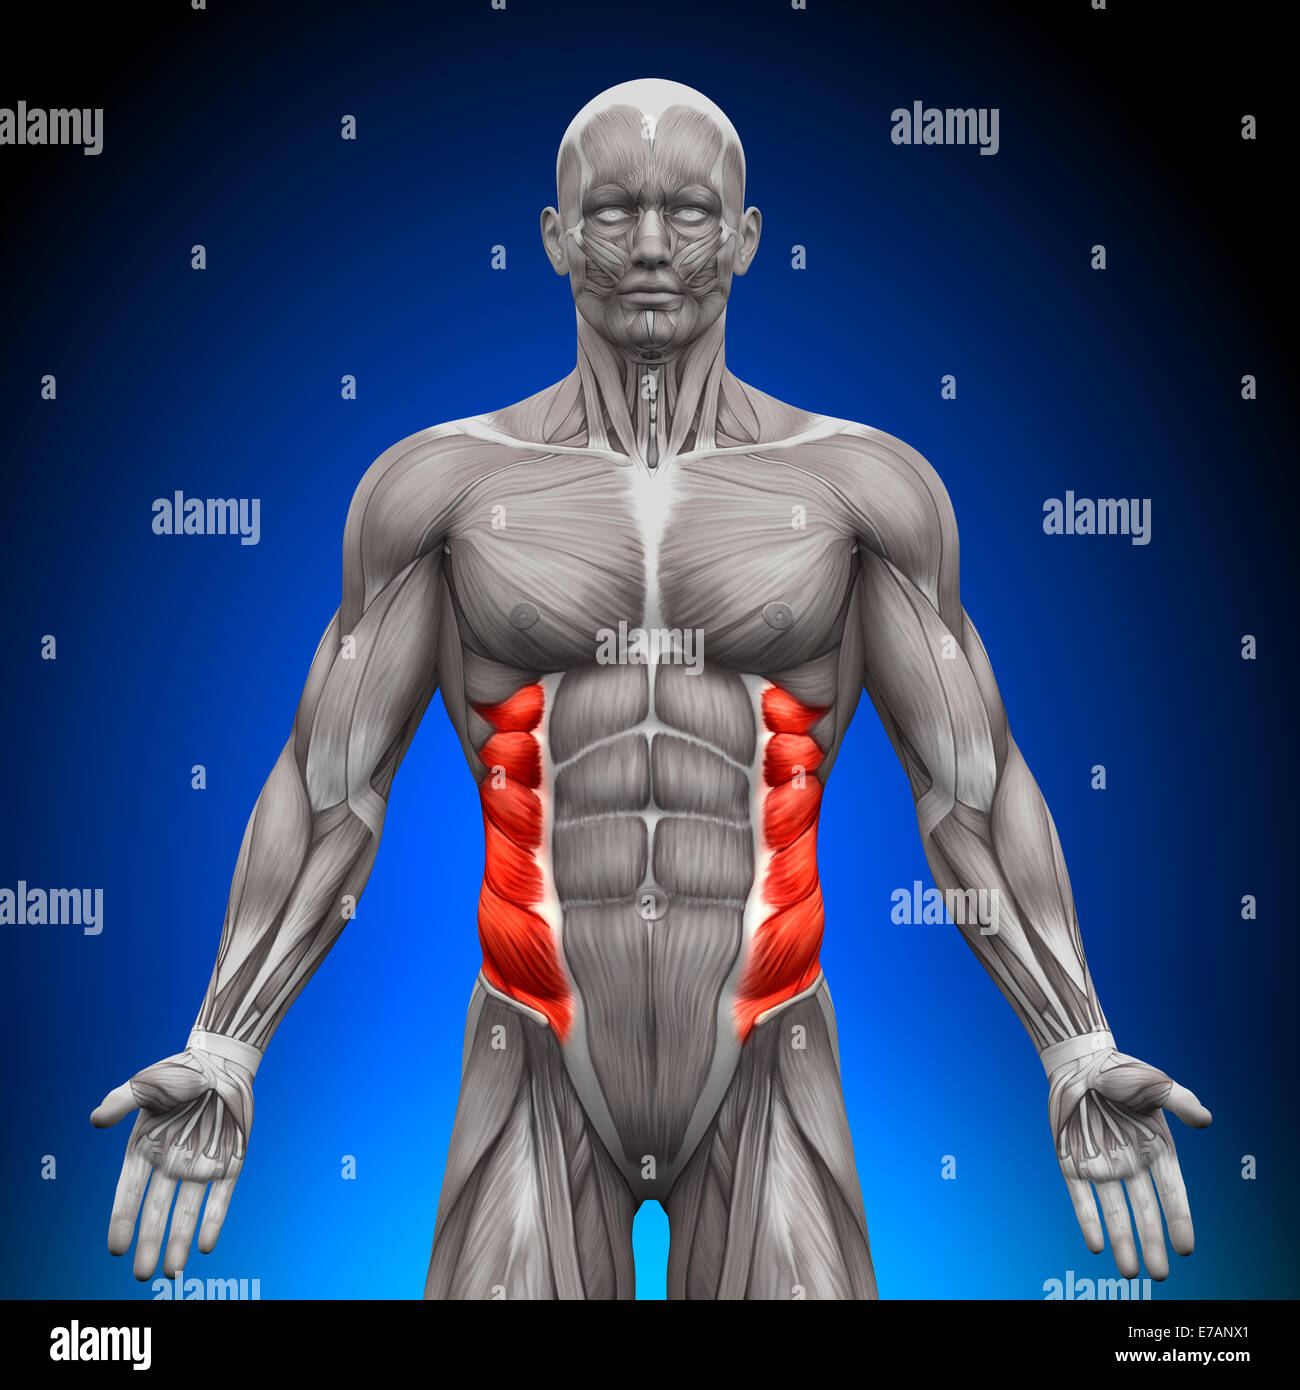 External Oblique - Anatomy Muscles - Stock Image